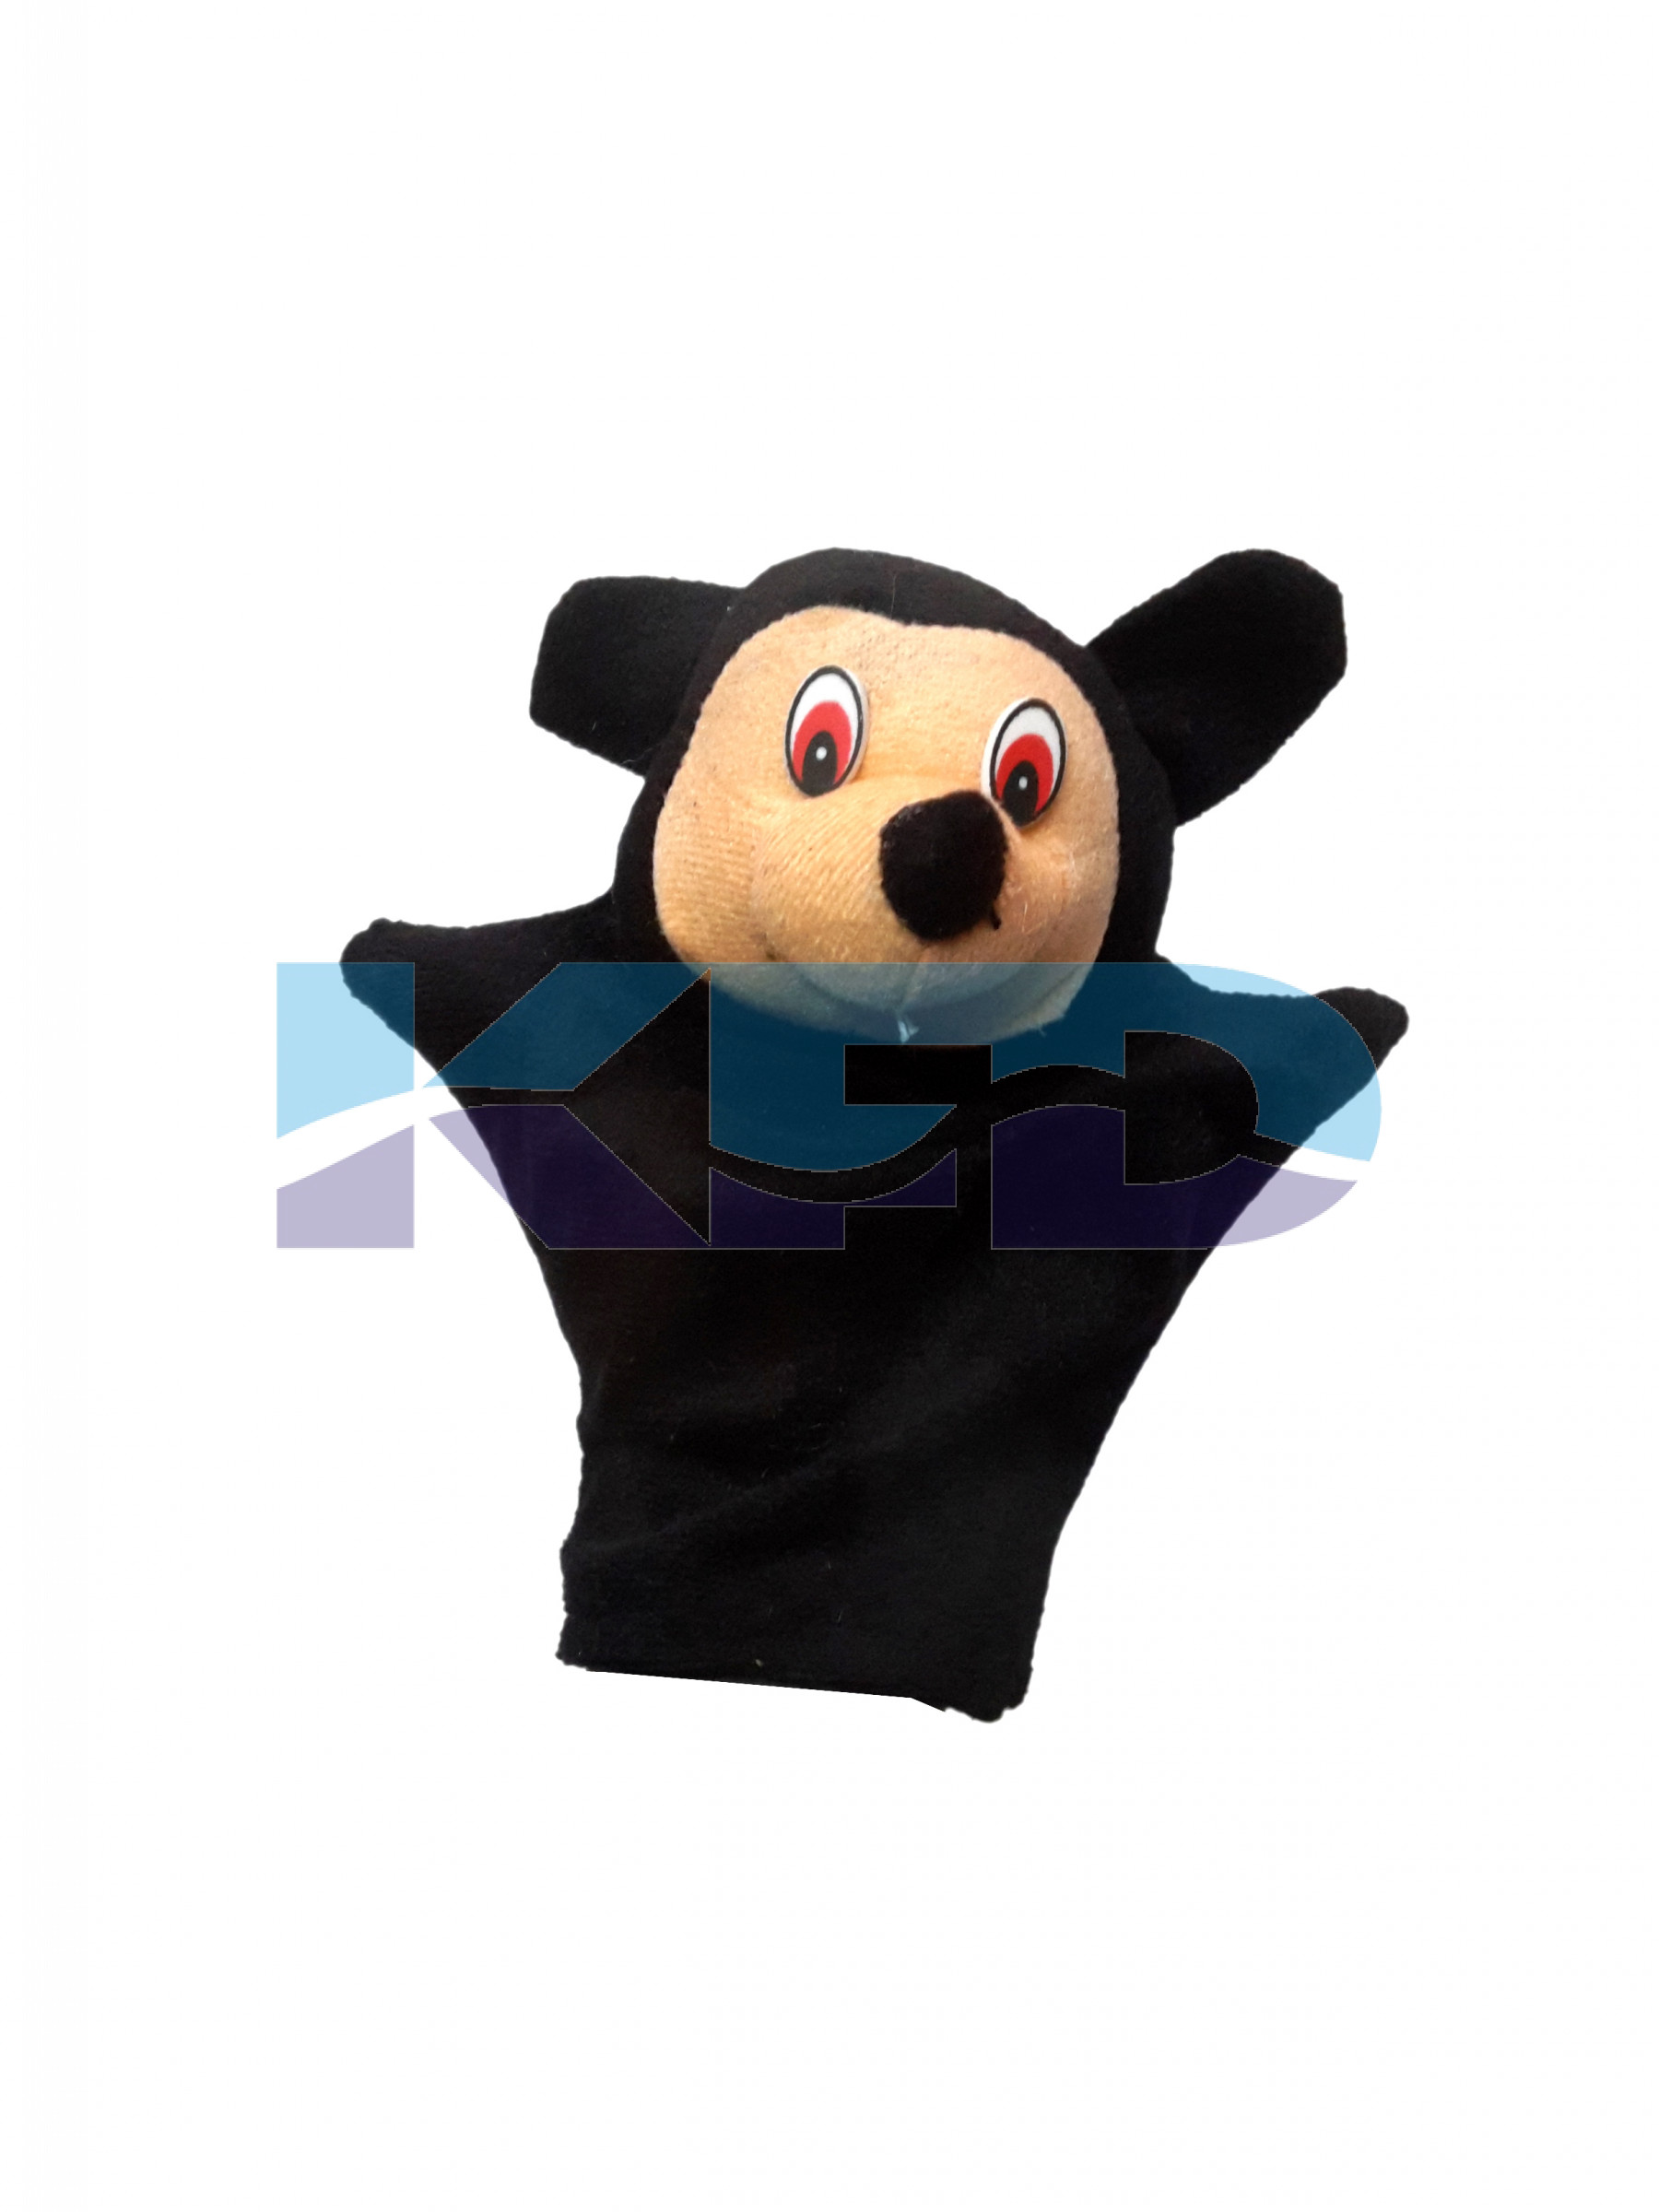 Micky Mouse Puppet for kids,Shows and tell for Annual